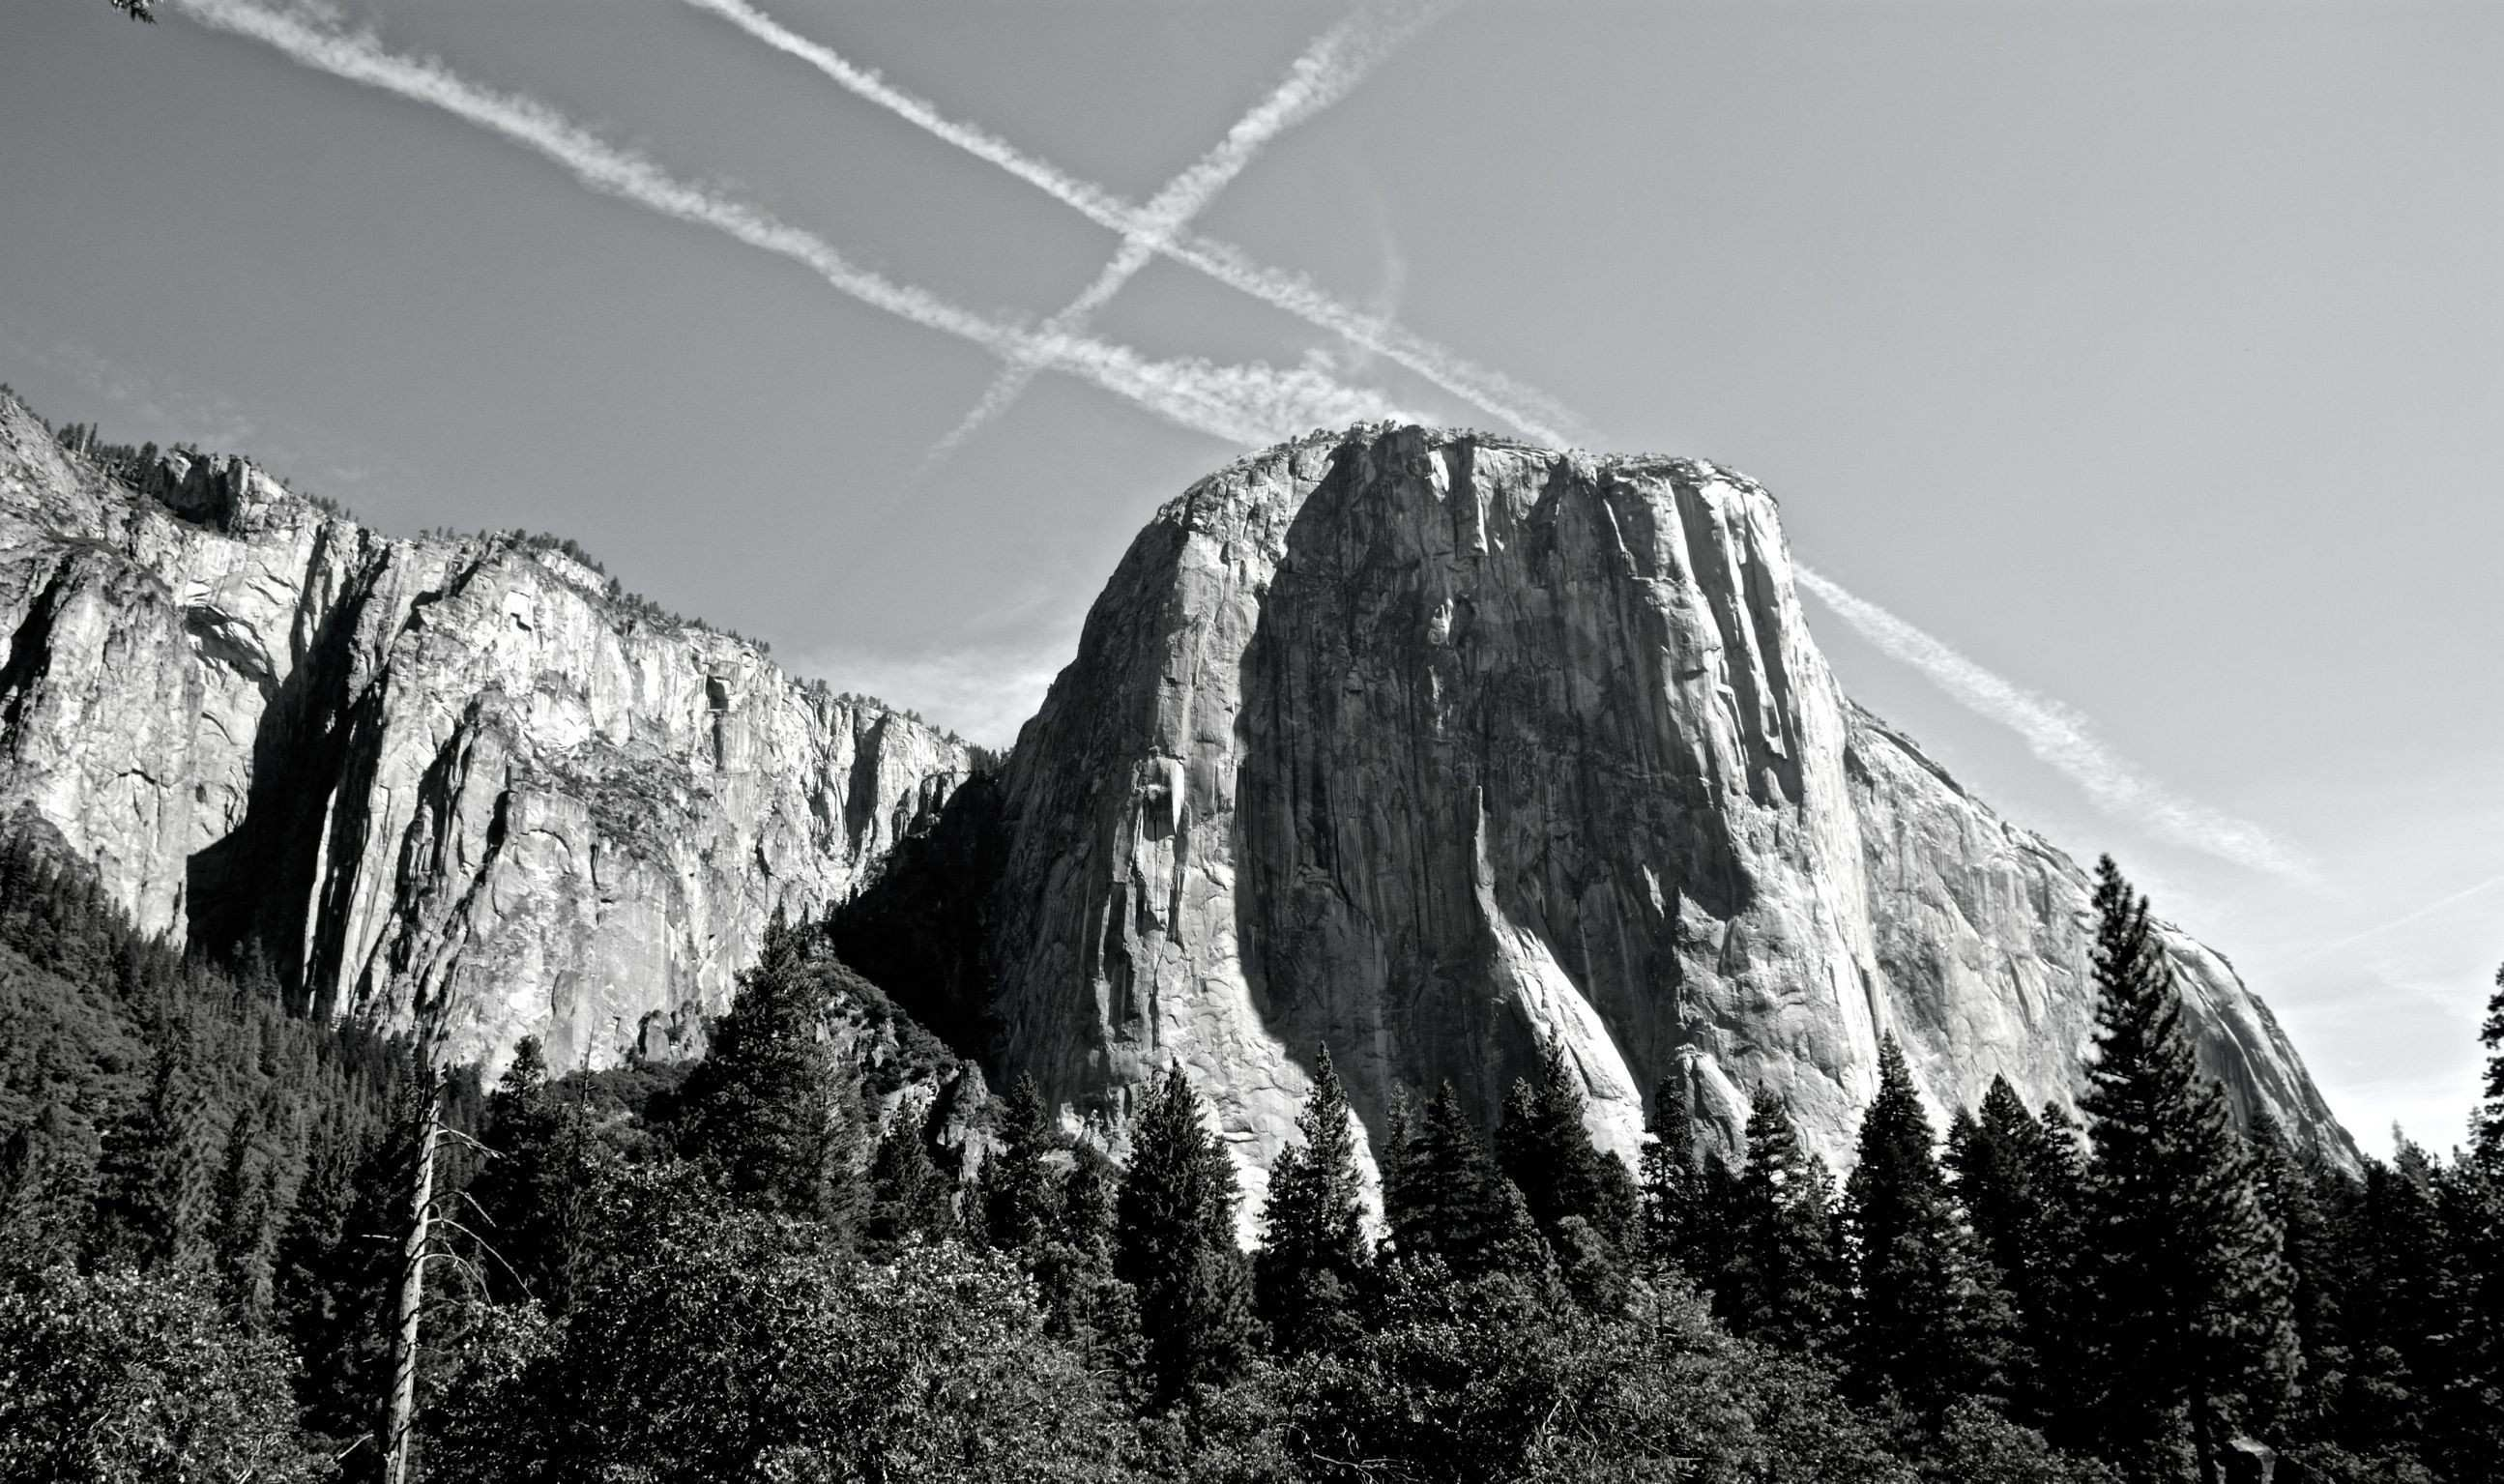 Man made lines of symmetry above nature made cliffs of irregularity